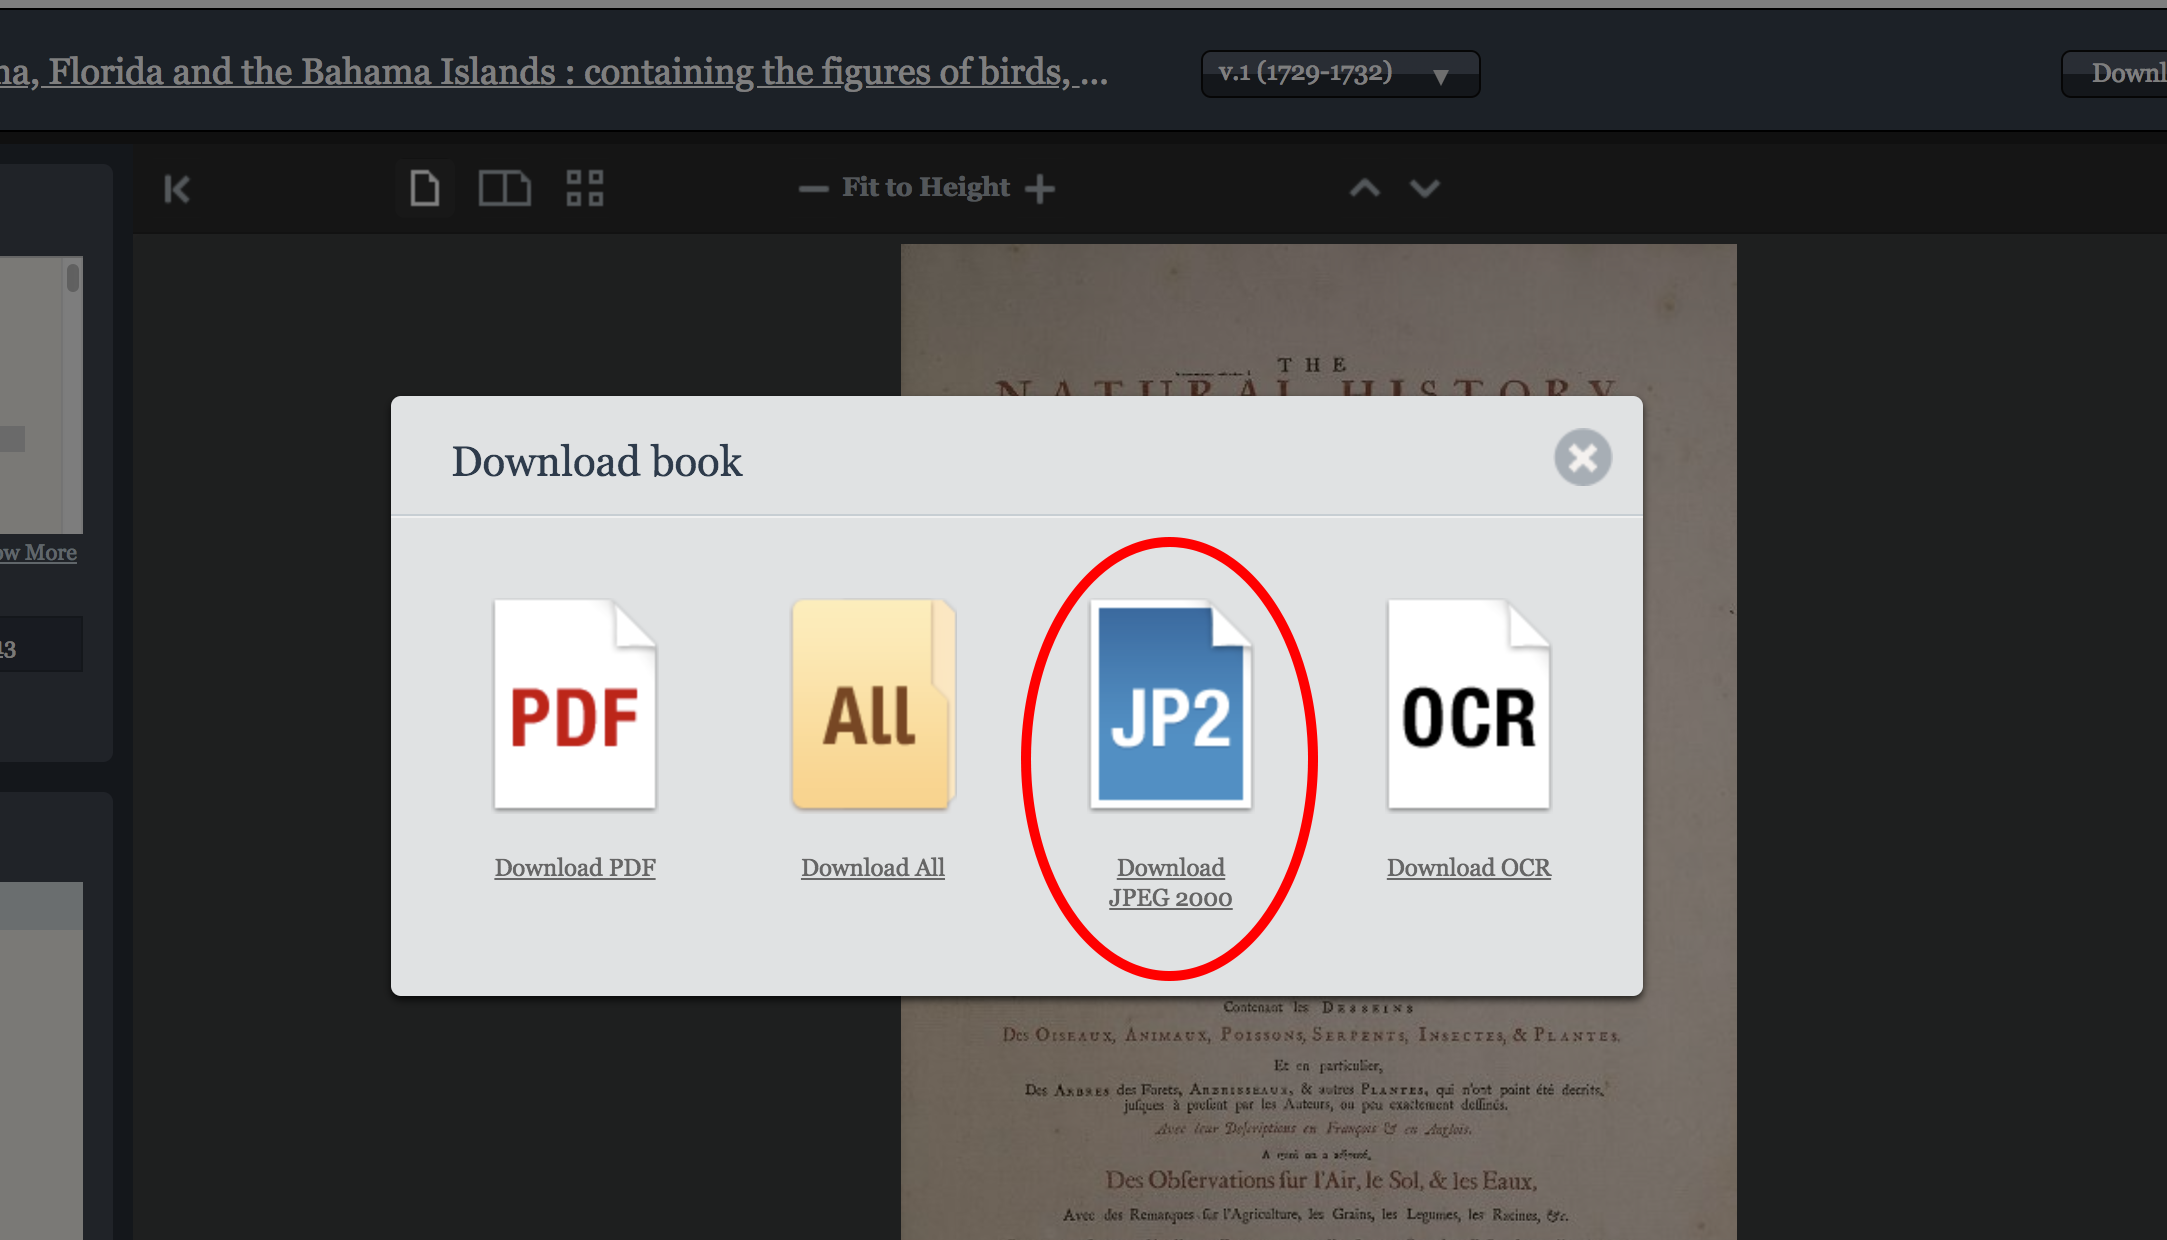 jp2 download option in book viewer